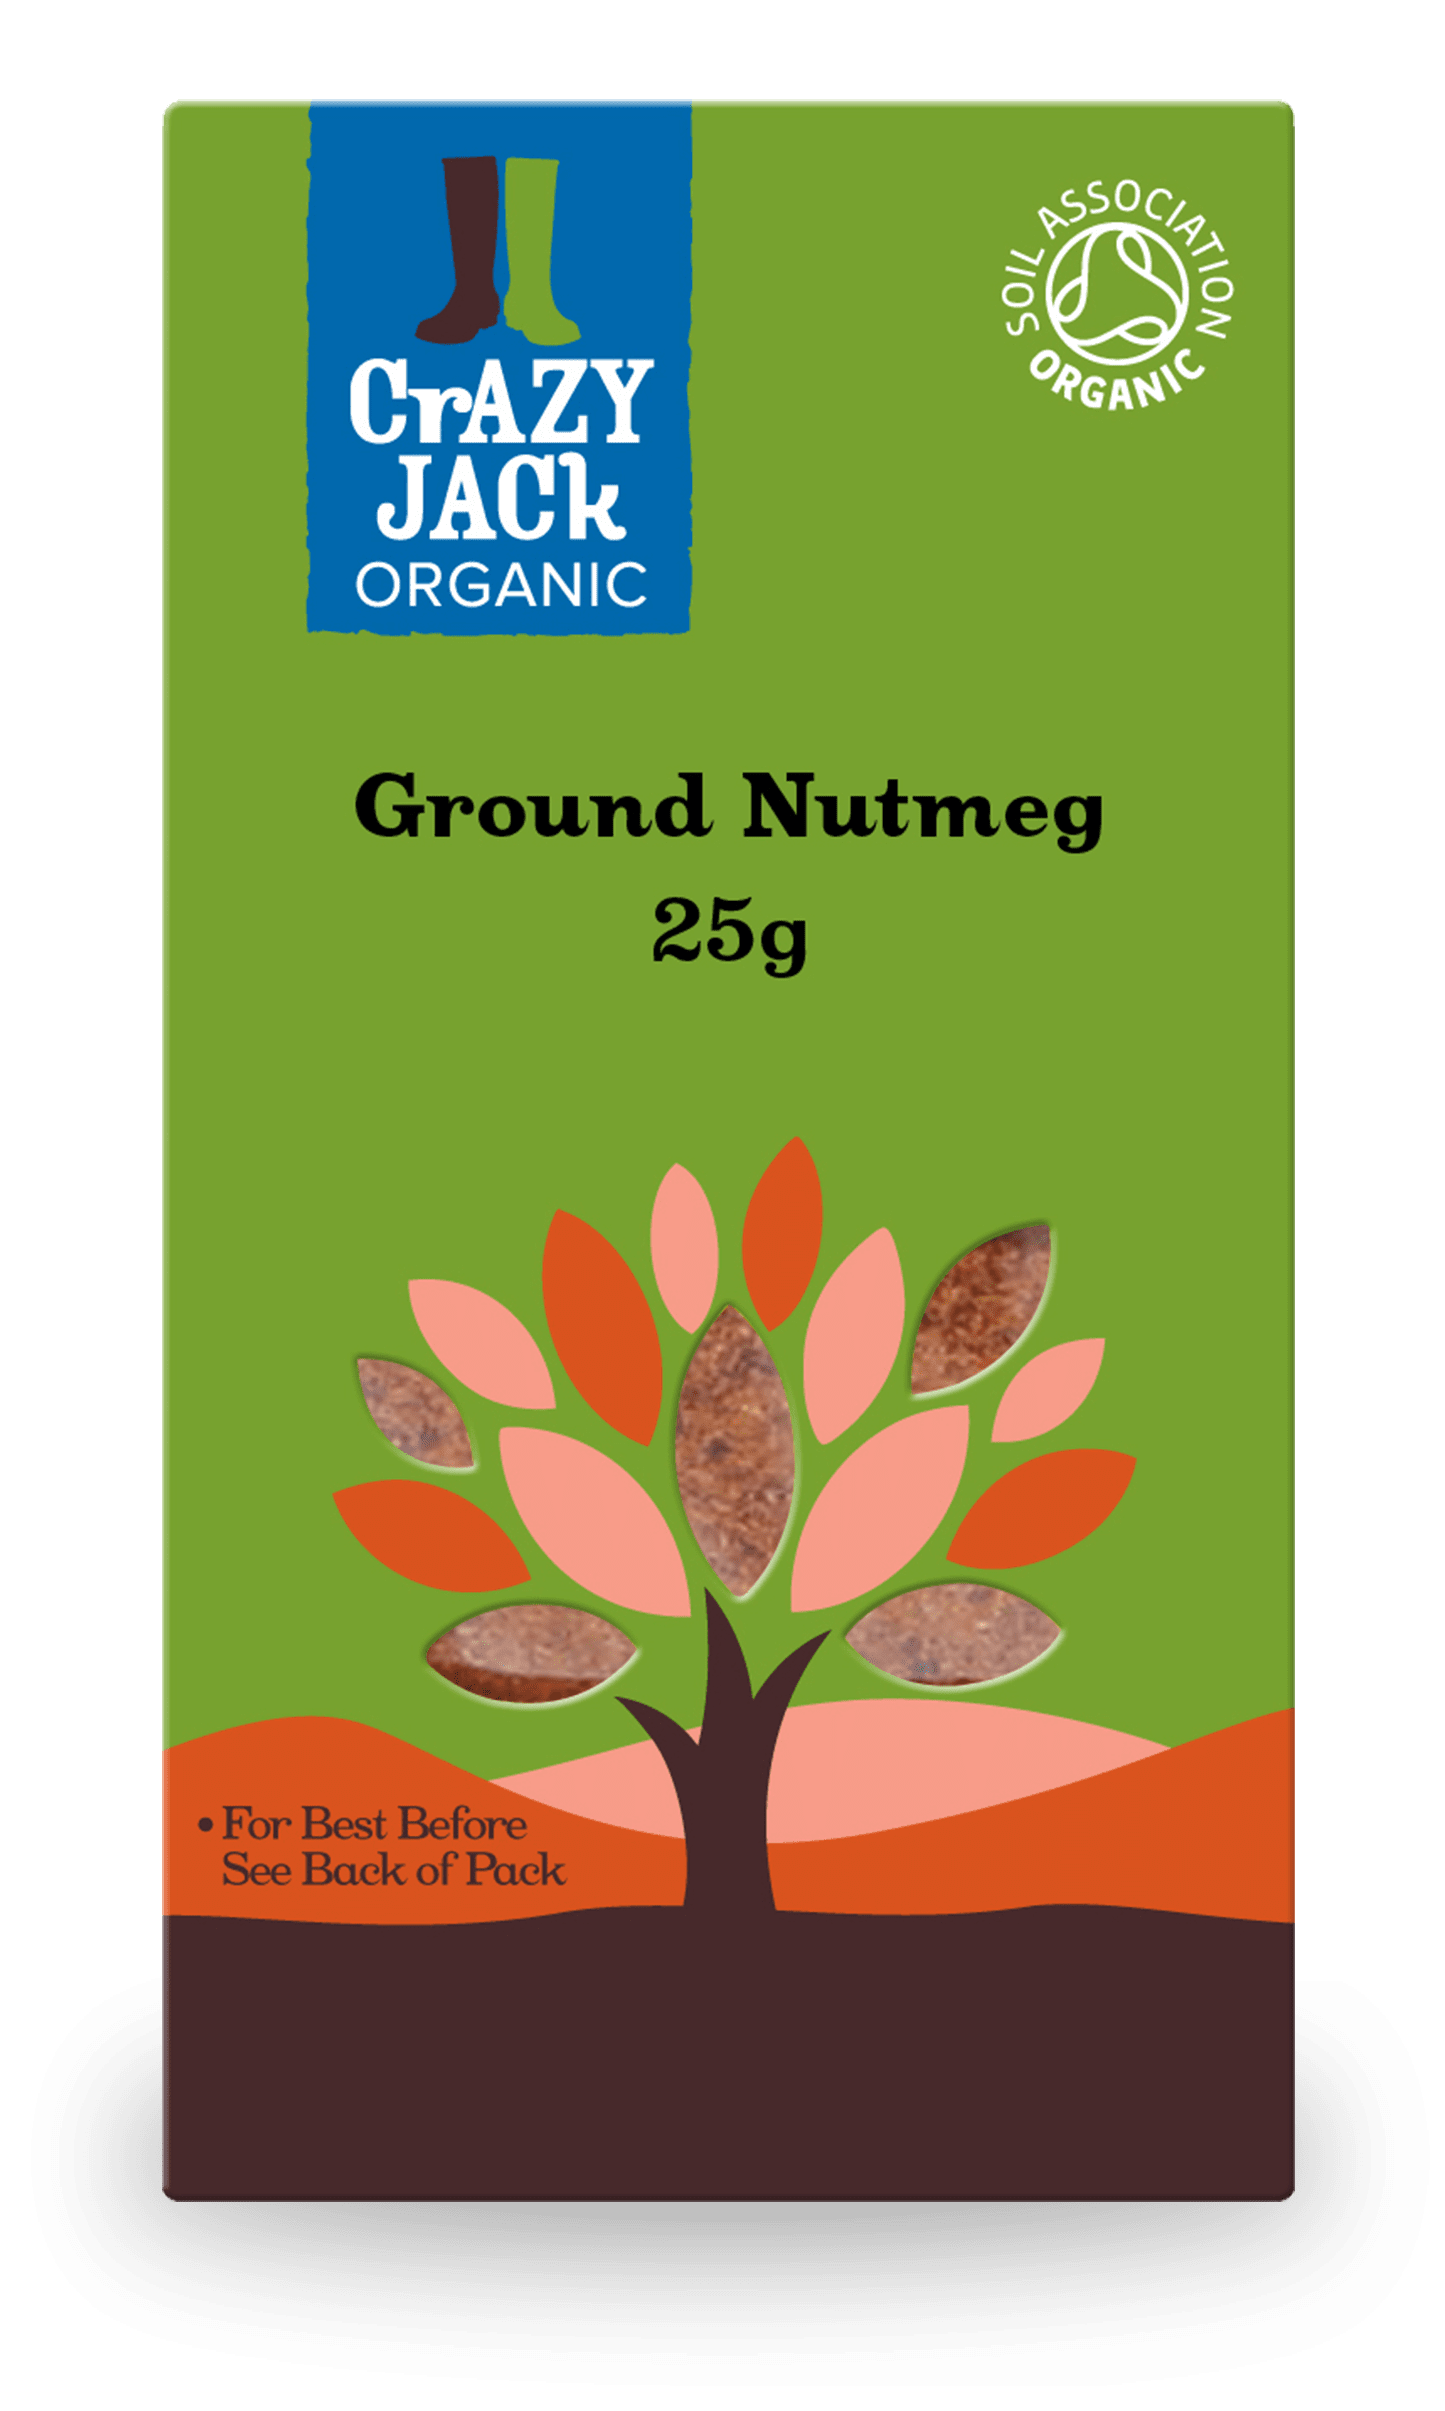 25g packet of organic ground nutmeg